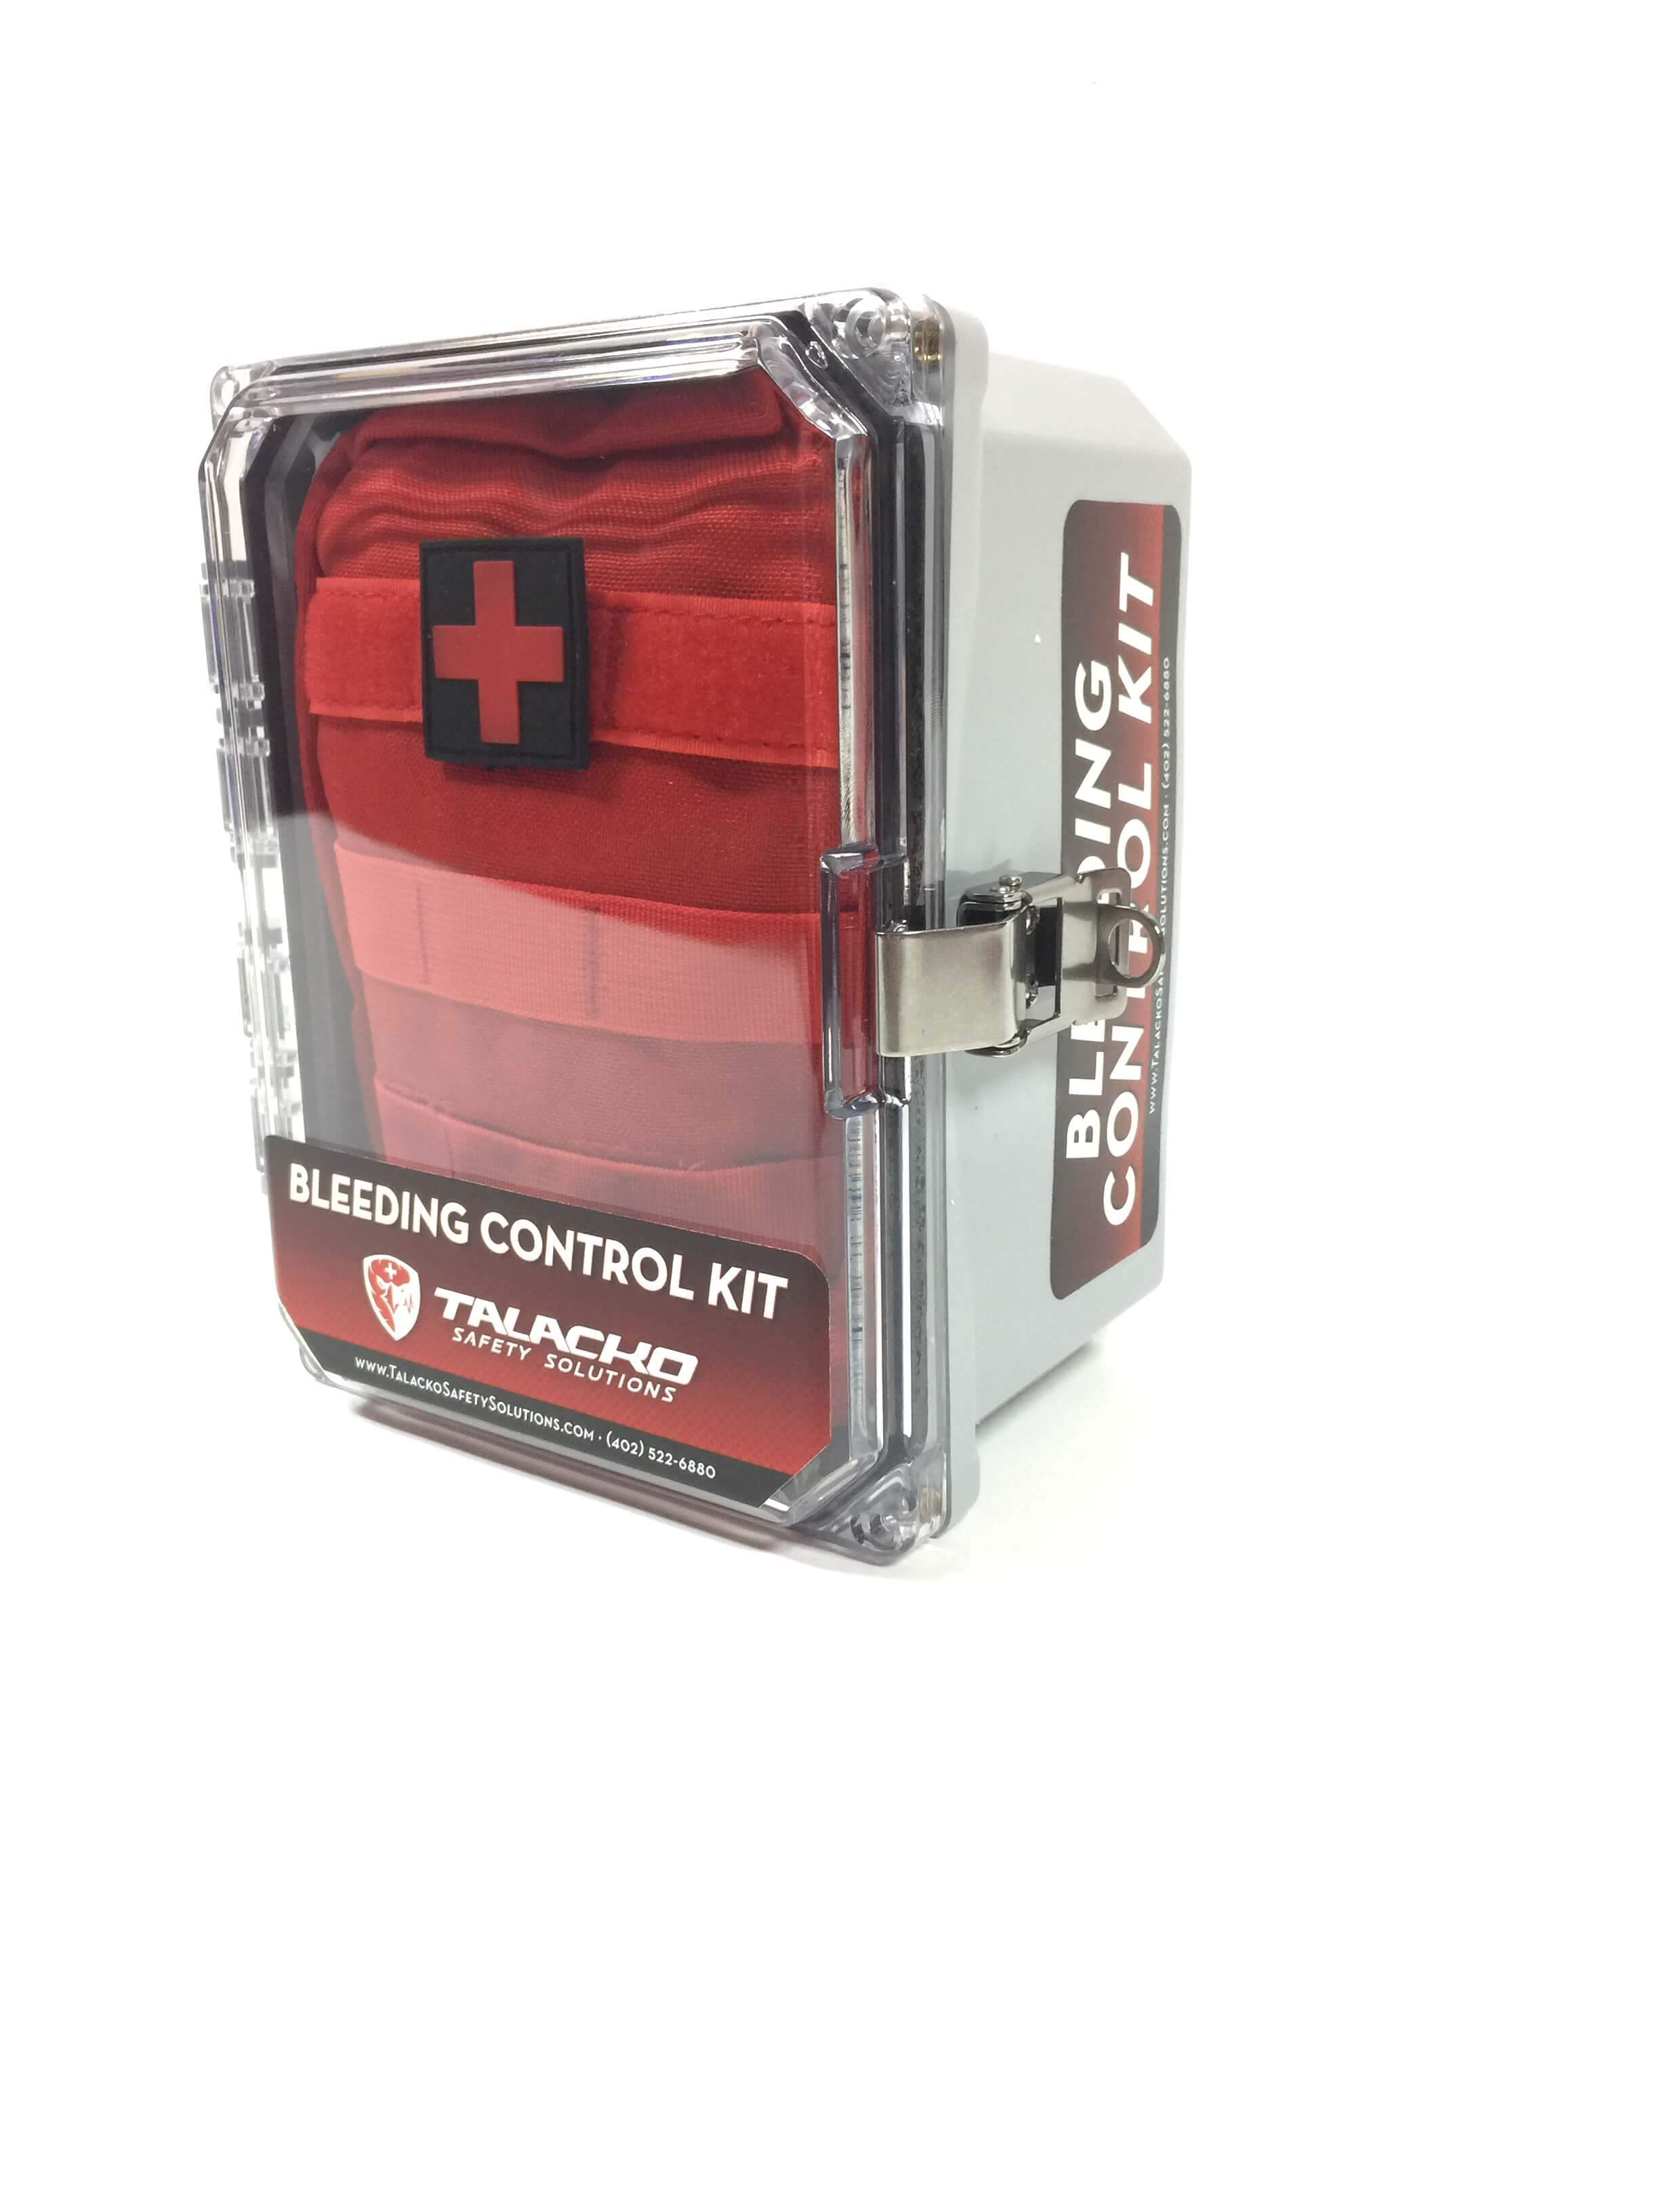 Basic Bleeding Control Kit in Nylon bag with 8x6x4 public access enclosure.